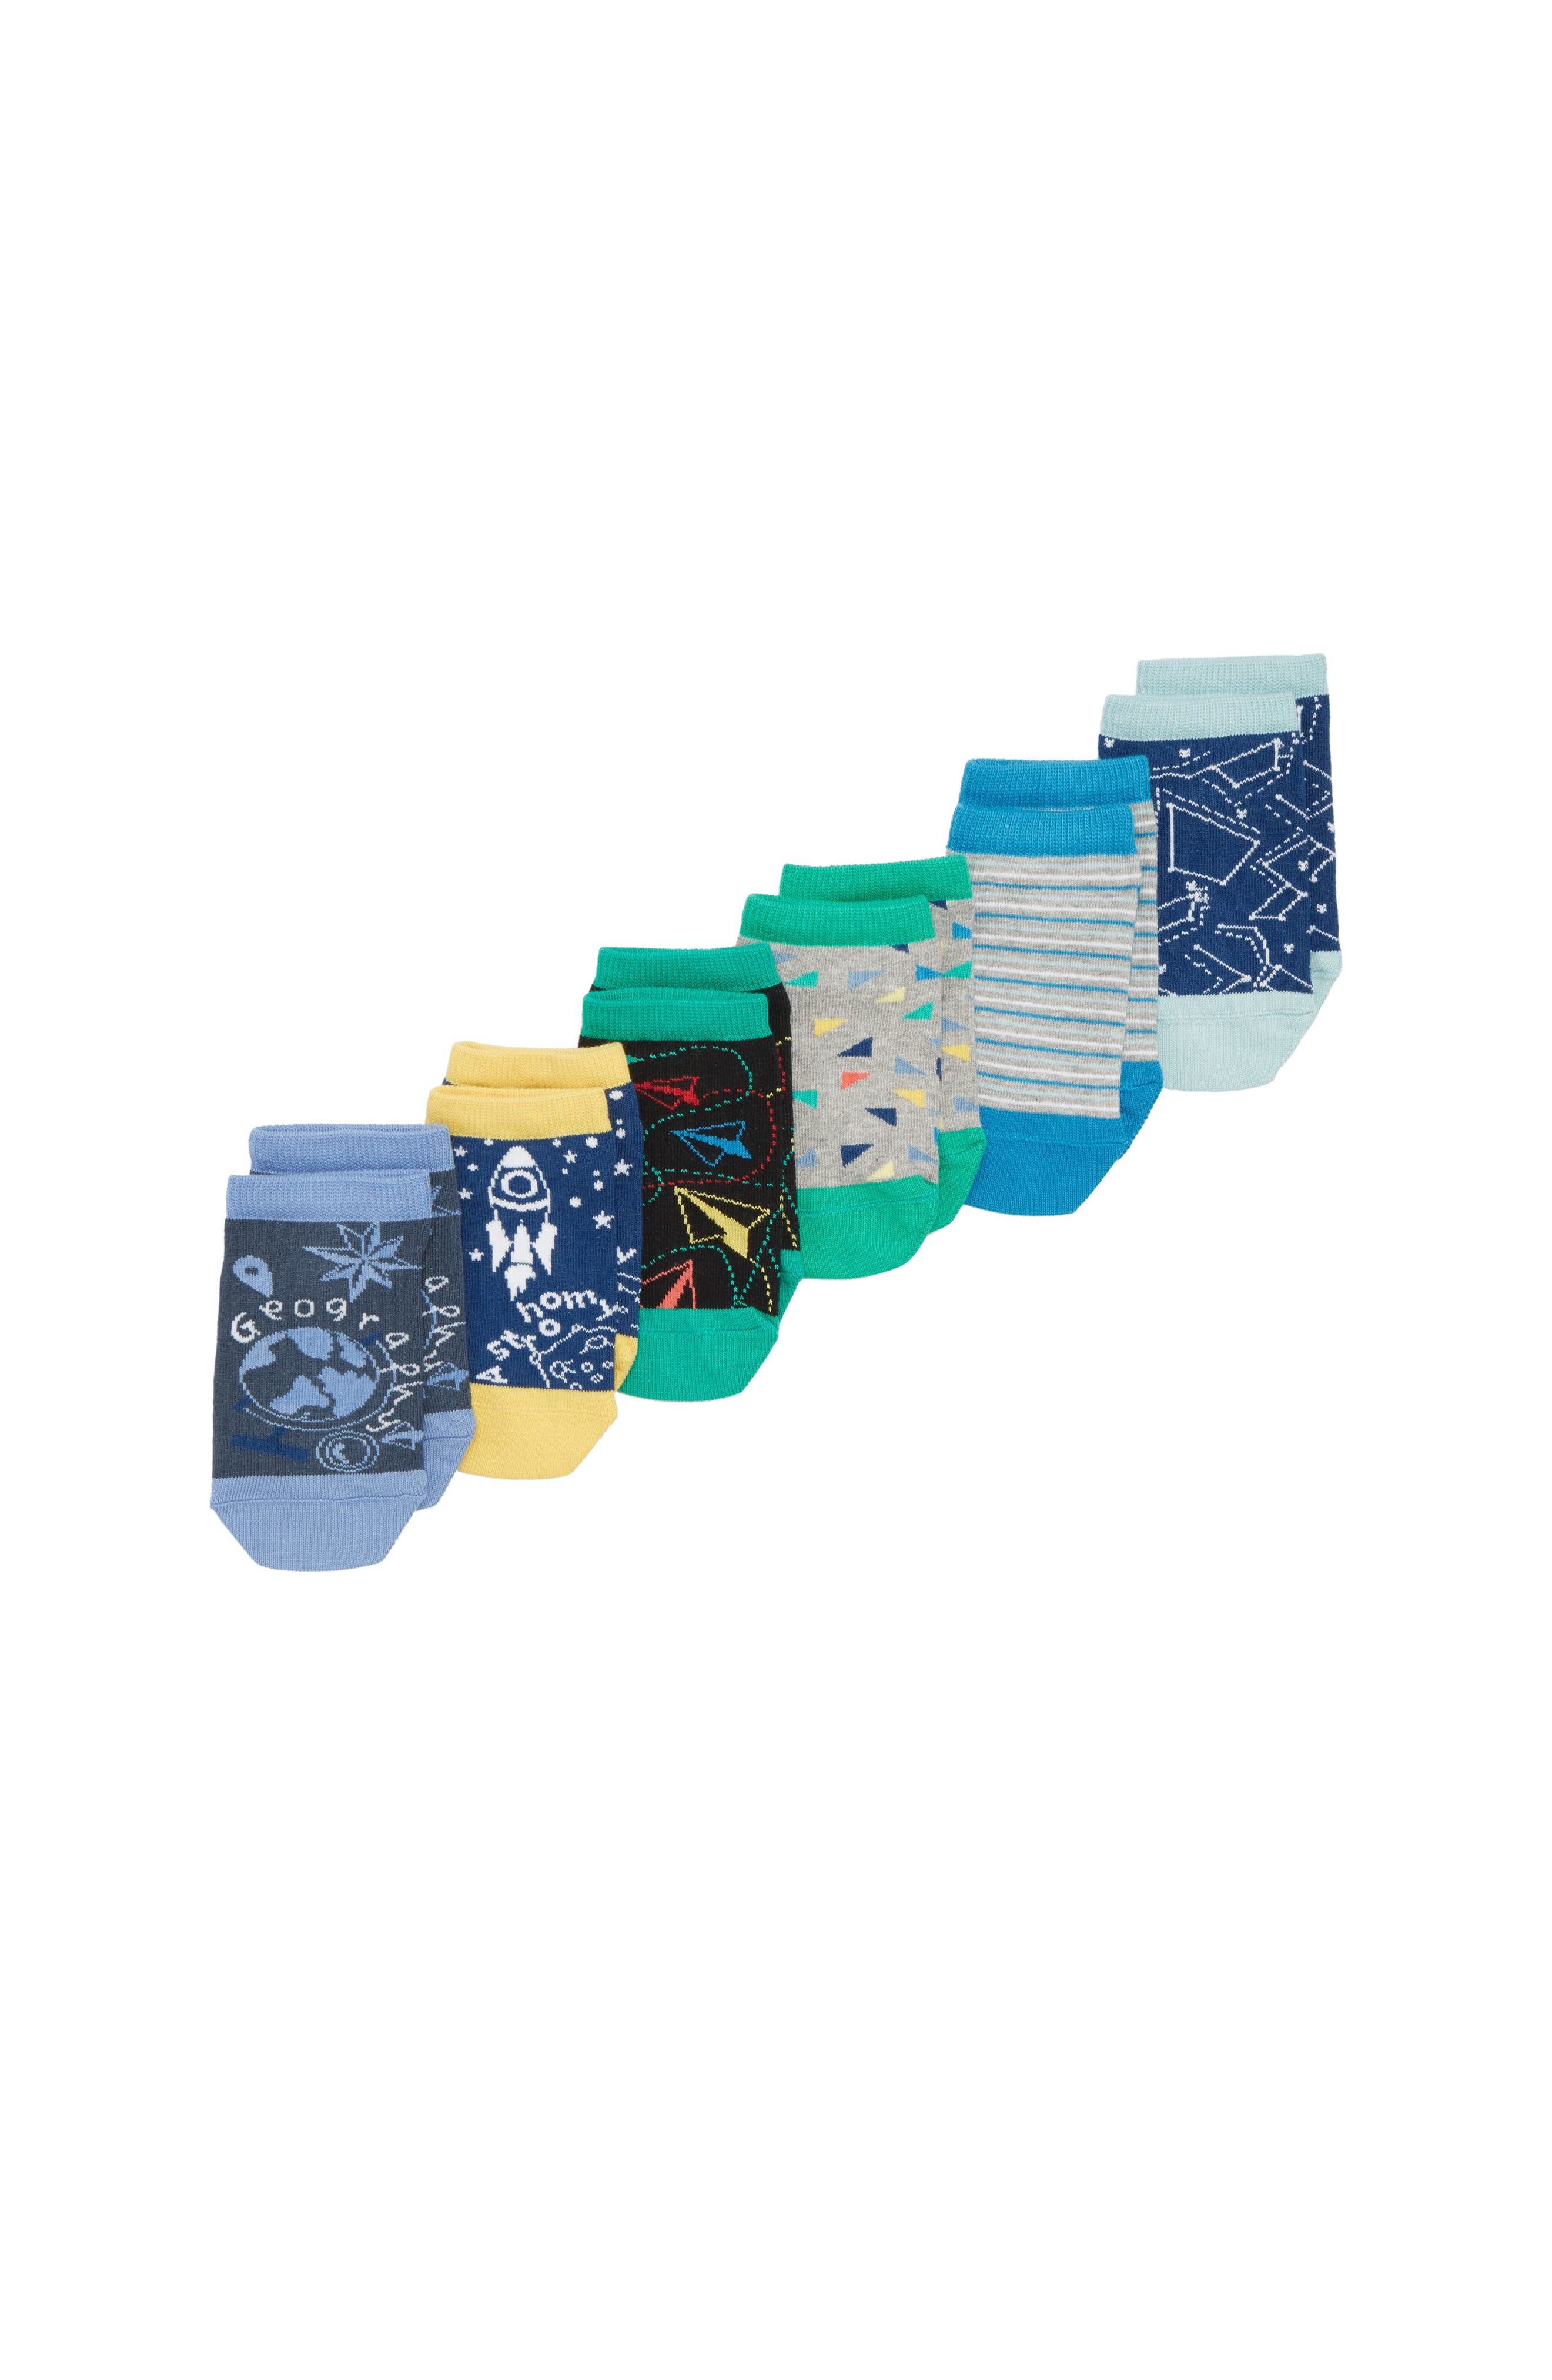 6-Pack Geography Low-Cut Socks,                         Main,                         color, Yellow Citrus/Navy Multi